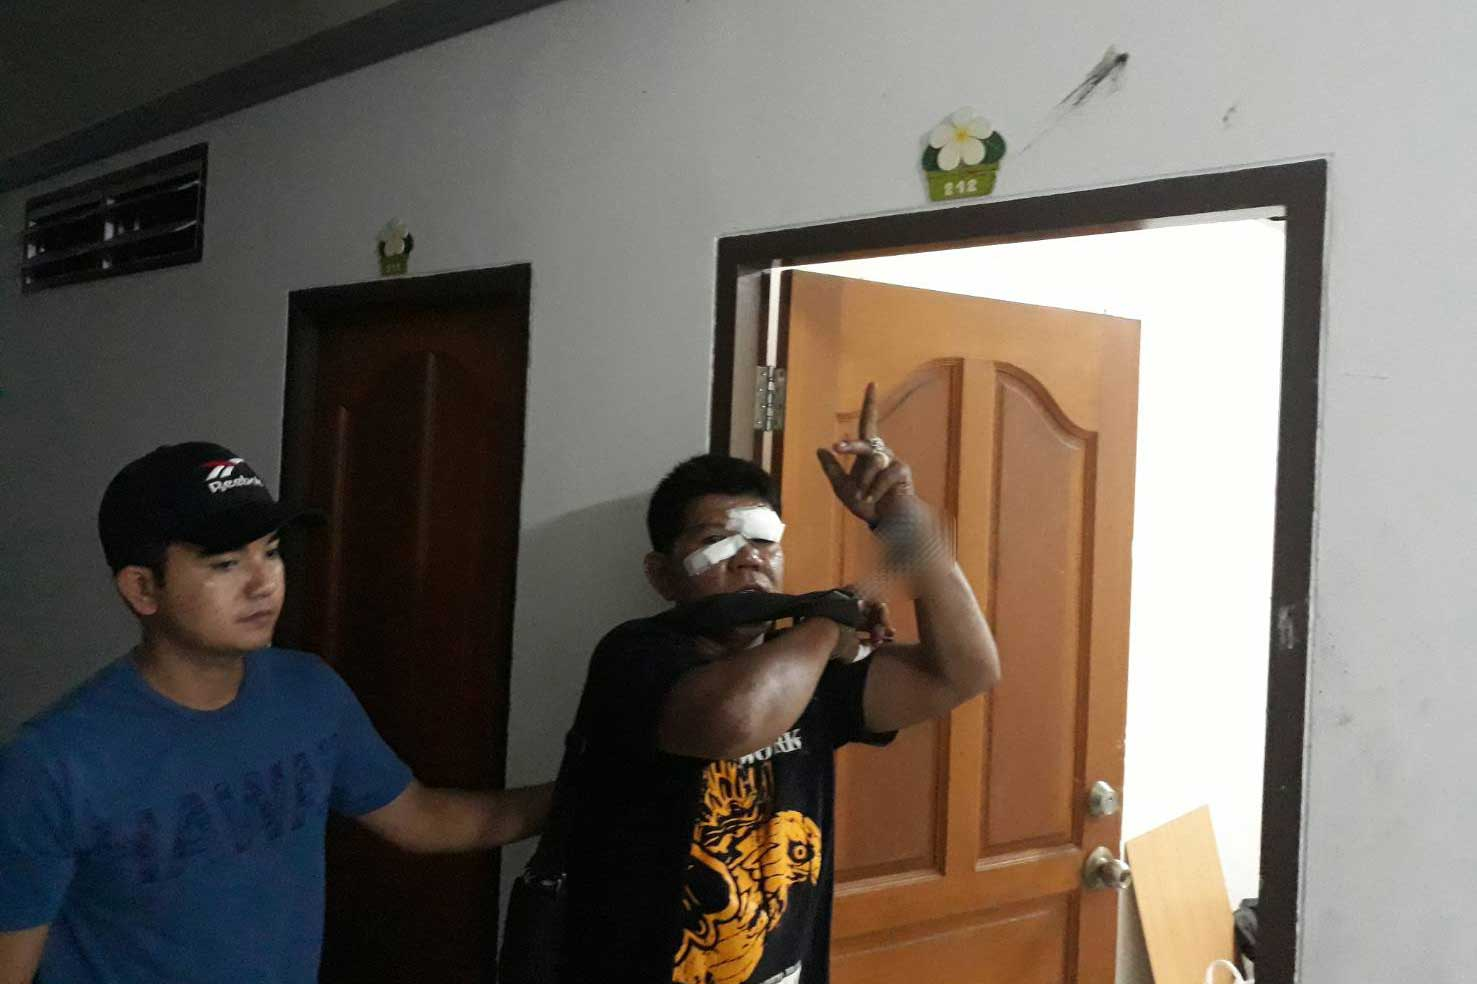 Tourists assaulted in hotel rooms on Koh Samui, man arrested